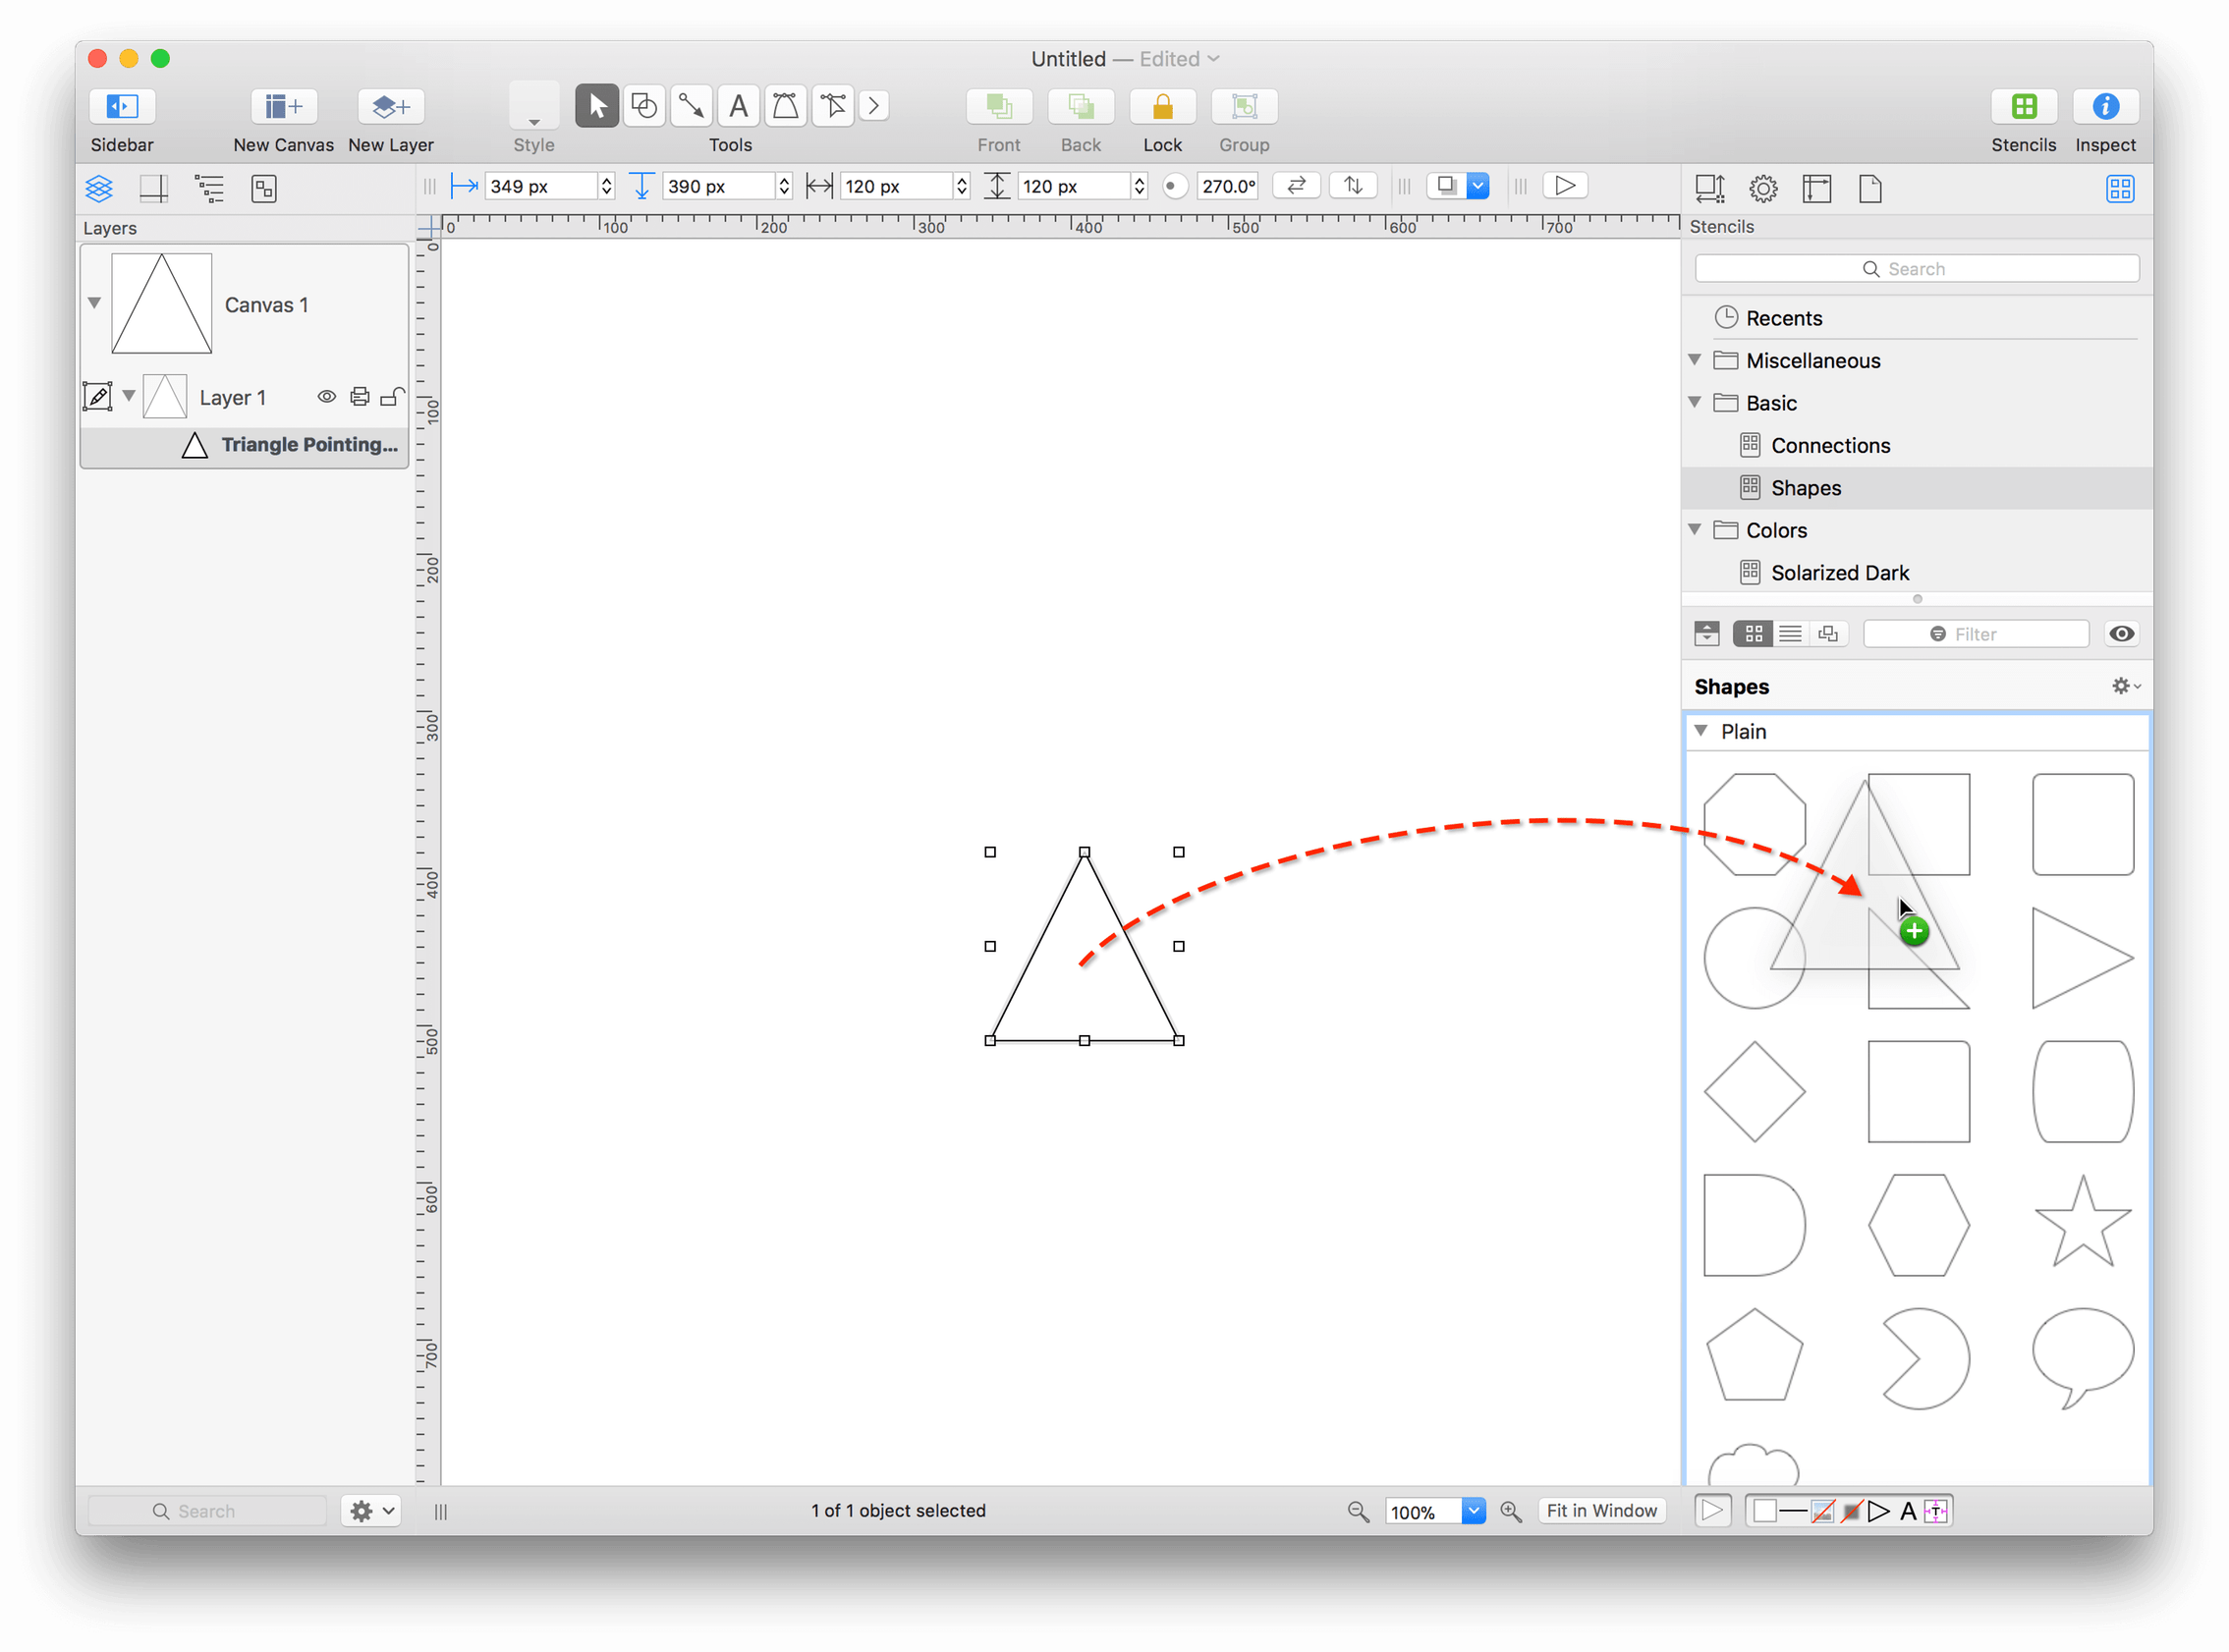 A triangle is shown on the canvas, with a dashed line used as an indicator that the object is being dragged into the Stencil Browser.